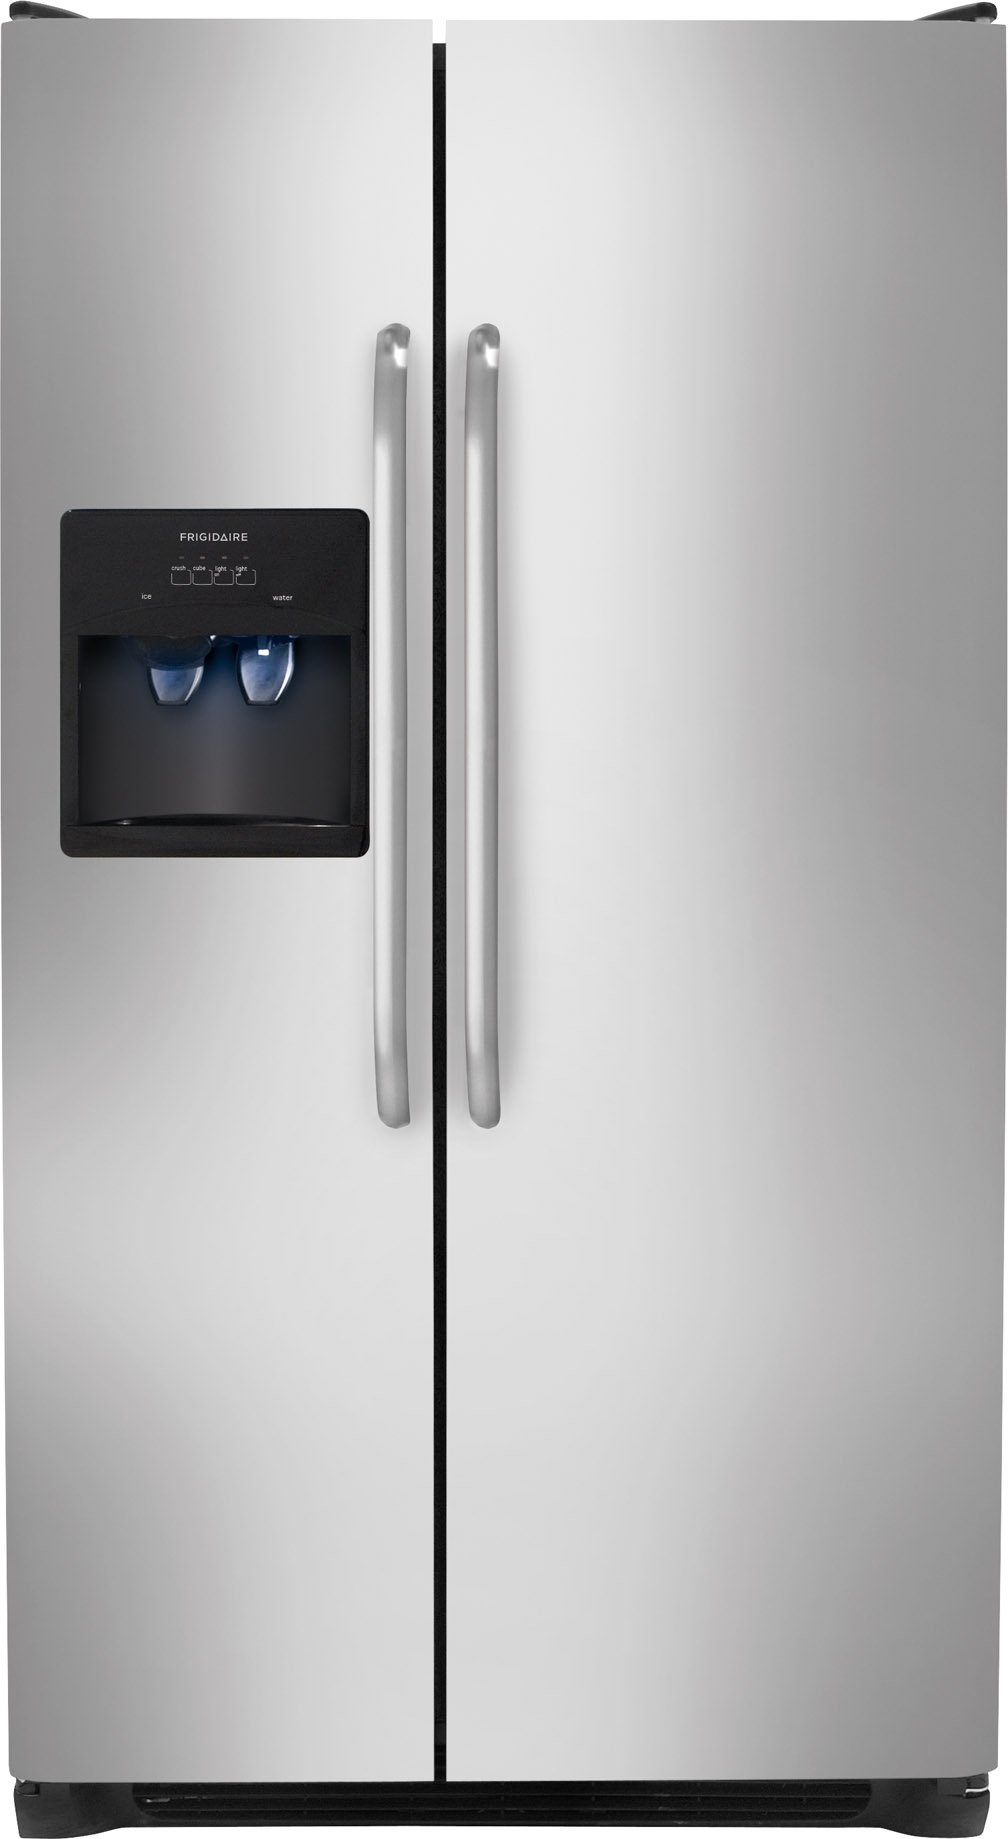 Frigidaire FFSS2614QS 25.5 Cu. Ft. Side-by-Side Refrigerator - Stainless Steel